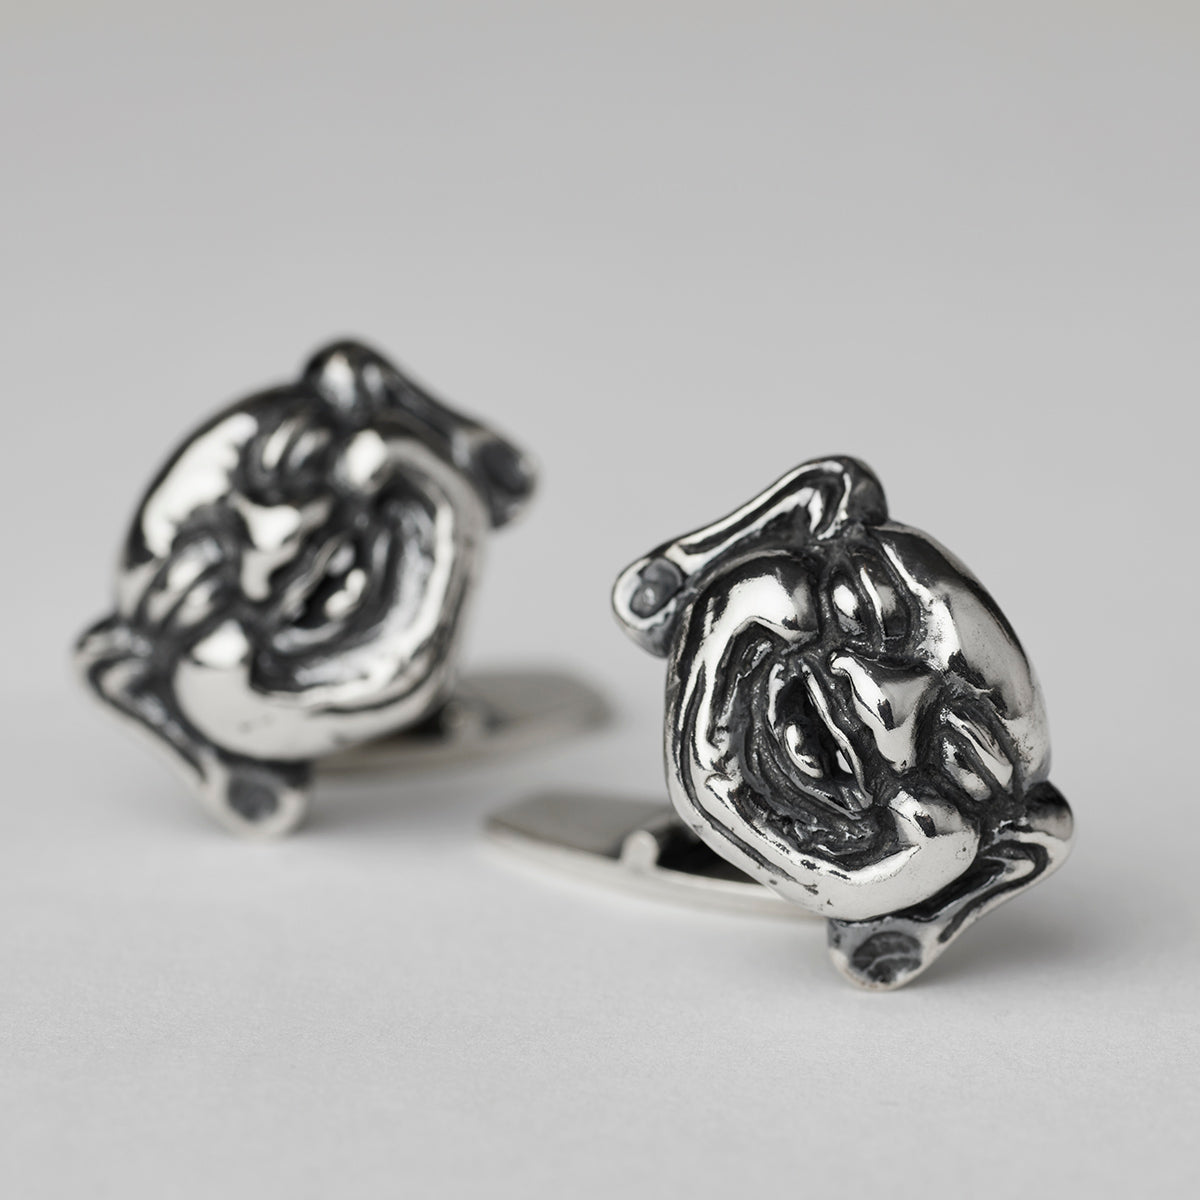 Laughing Buddha Cufflinks